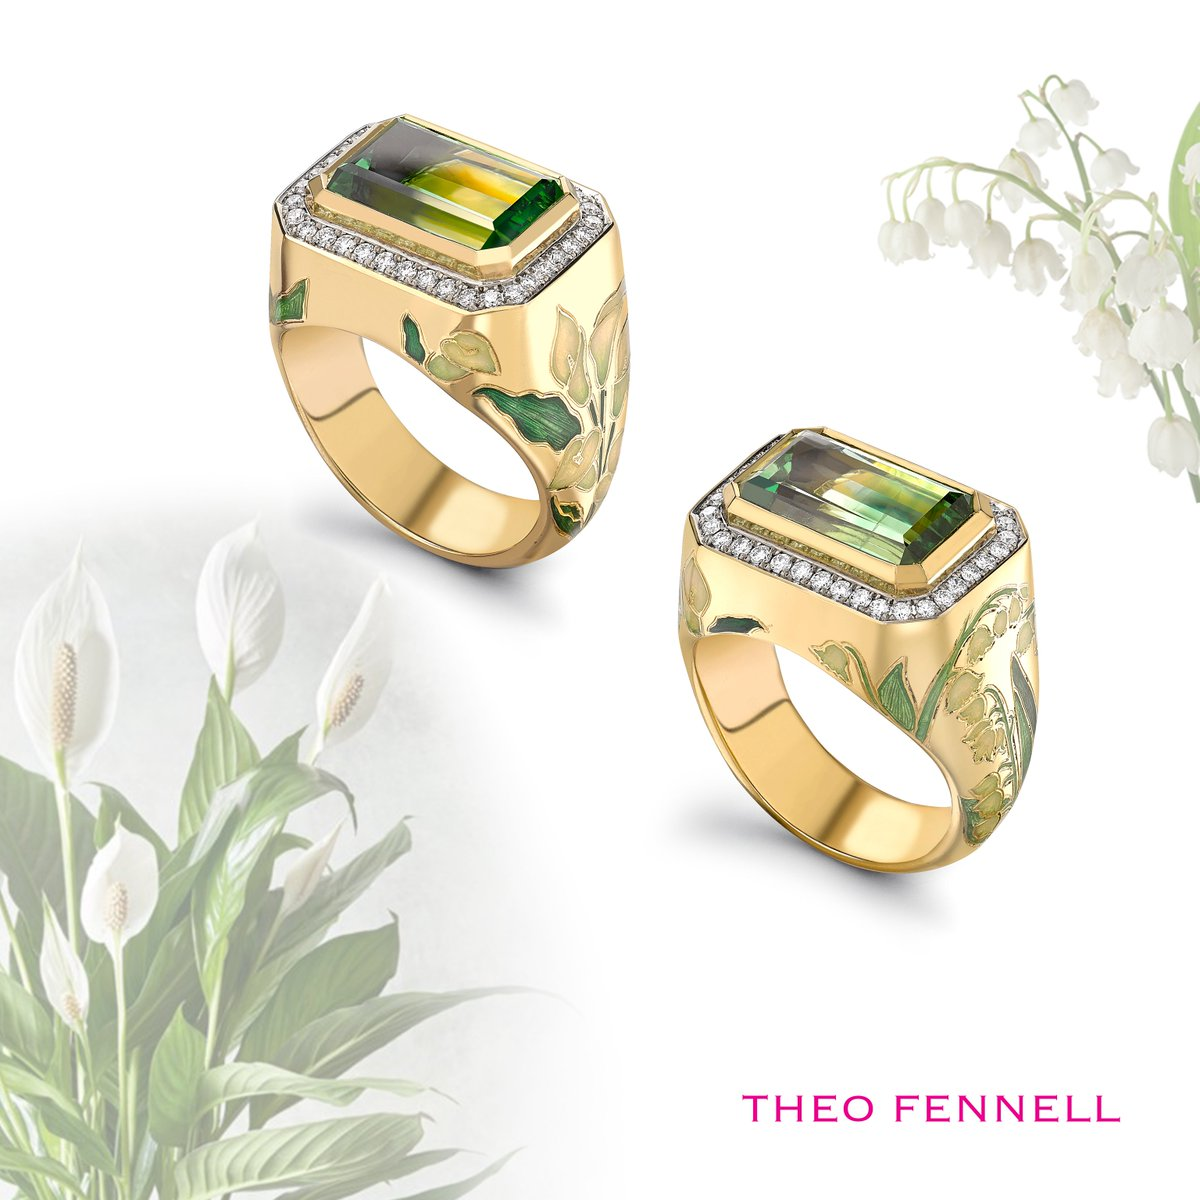 A very rare white and green tsavorite ring with lilies of the valley and snowdrops with enamelling. An exceptional way to say 'Hello Spring' #TheoFennell #Tsavorite #Enamel #Ring #Spring #LilyOfTheValley #Snowdroppic.twitter.com/dWInRBlXdi